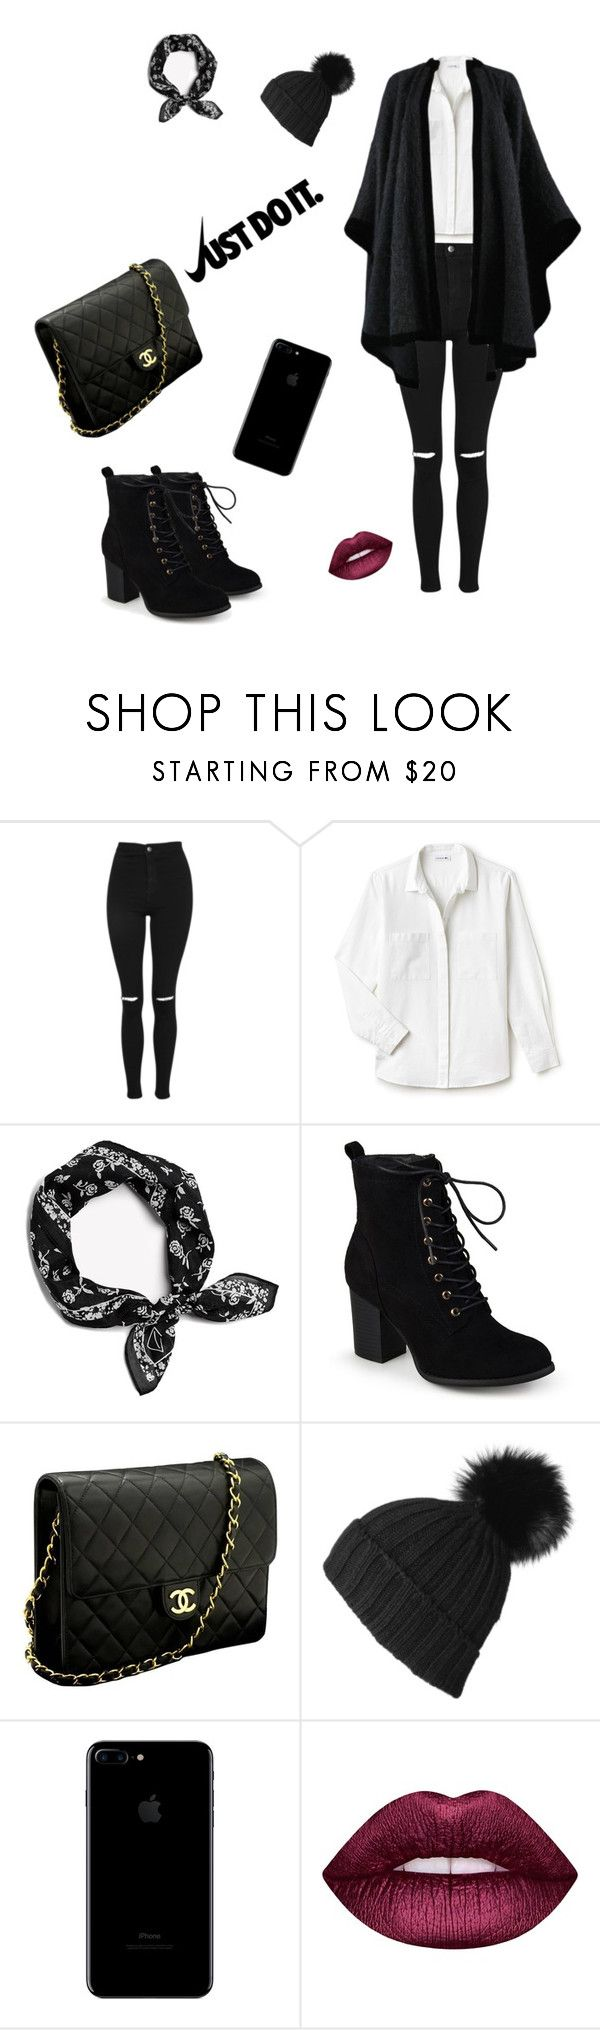 """back to winter"" by fazilebrahimi on Polyvore featuring Topshop, Lacoste, rag & bone, Journee Collection, Chanel, Black, Lime Crime, Yves Saint Laurent, NIKE and outfit"